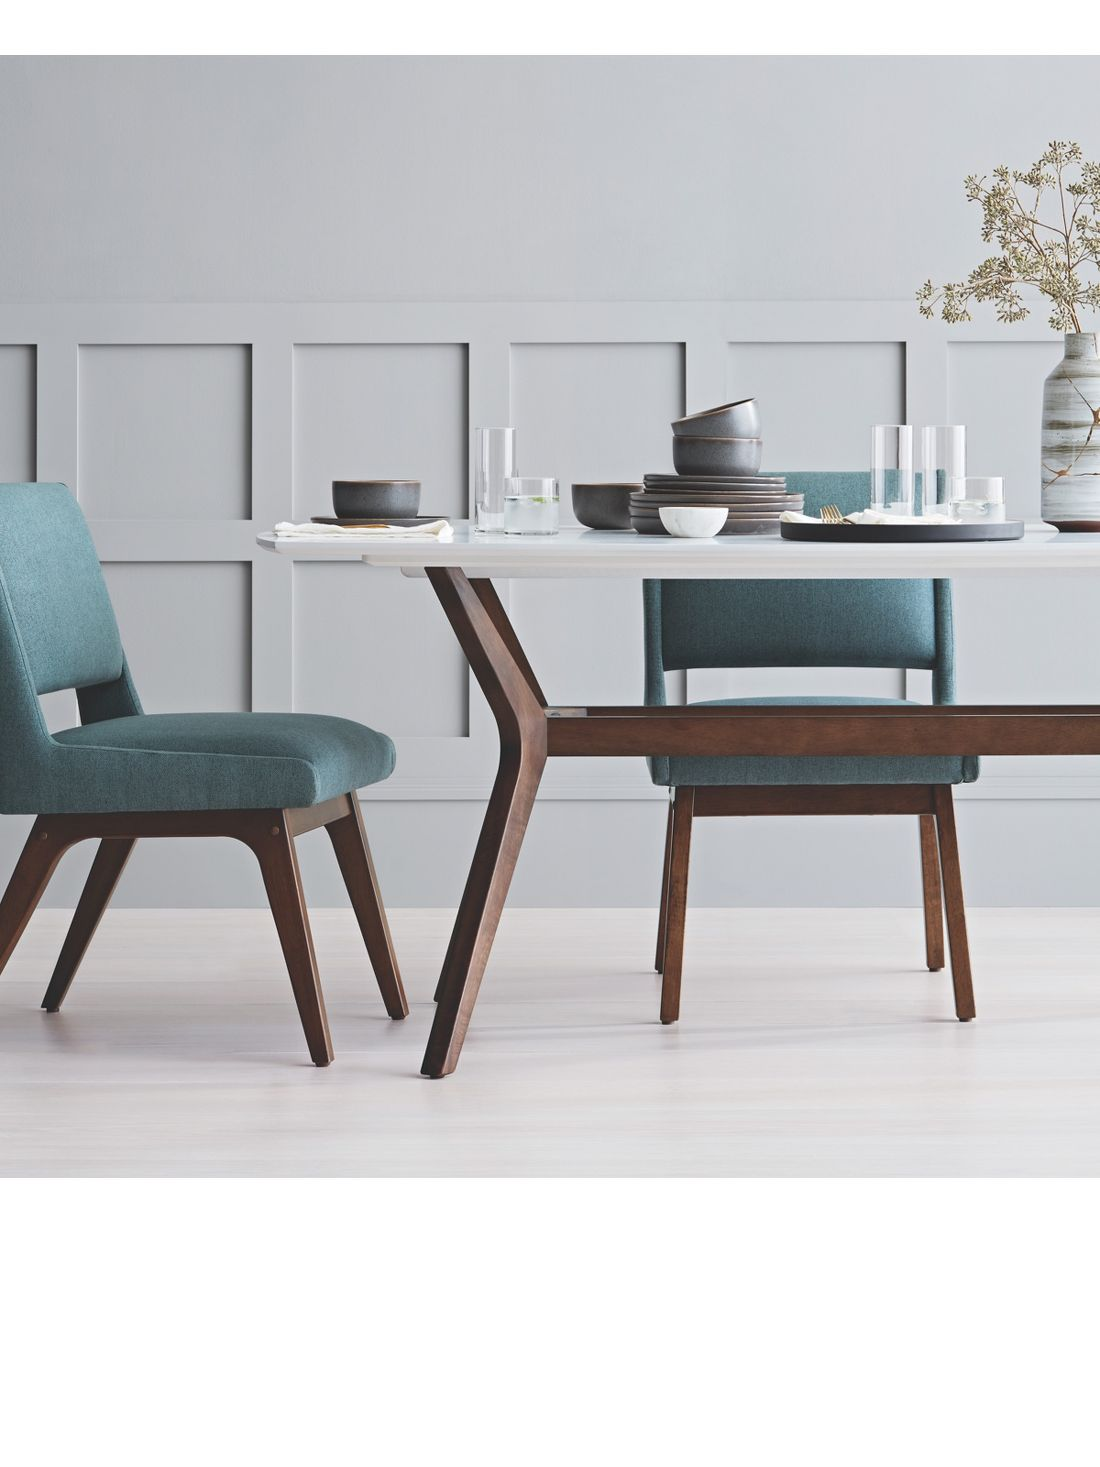 modern dining room collection project target teal accent table kidney side garden chairs set drawer file cabinet small balcony furniture standard end height ikea storage crates